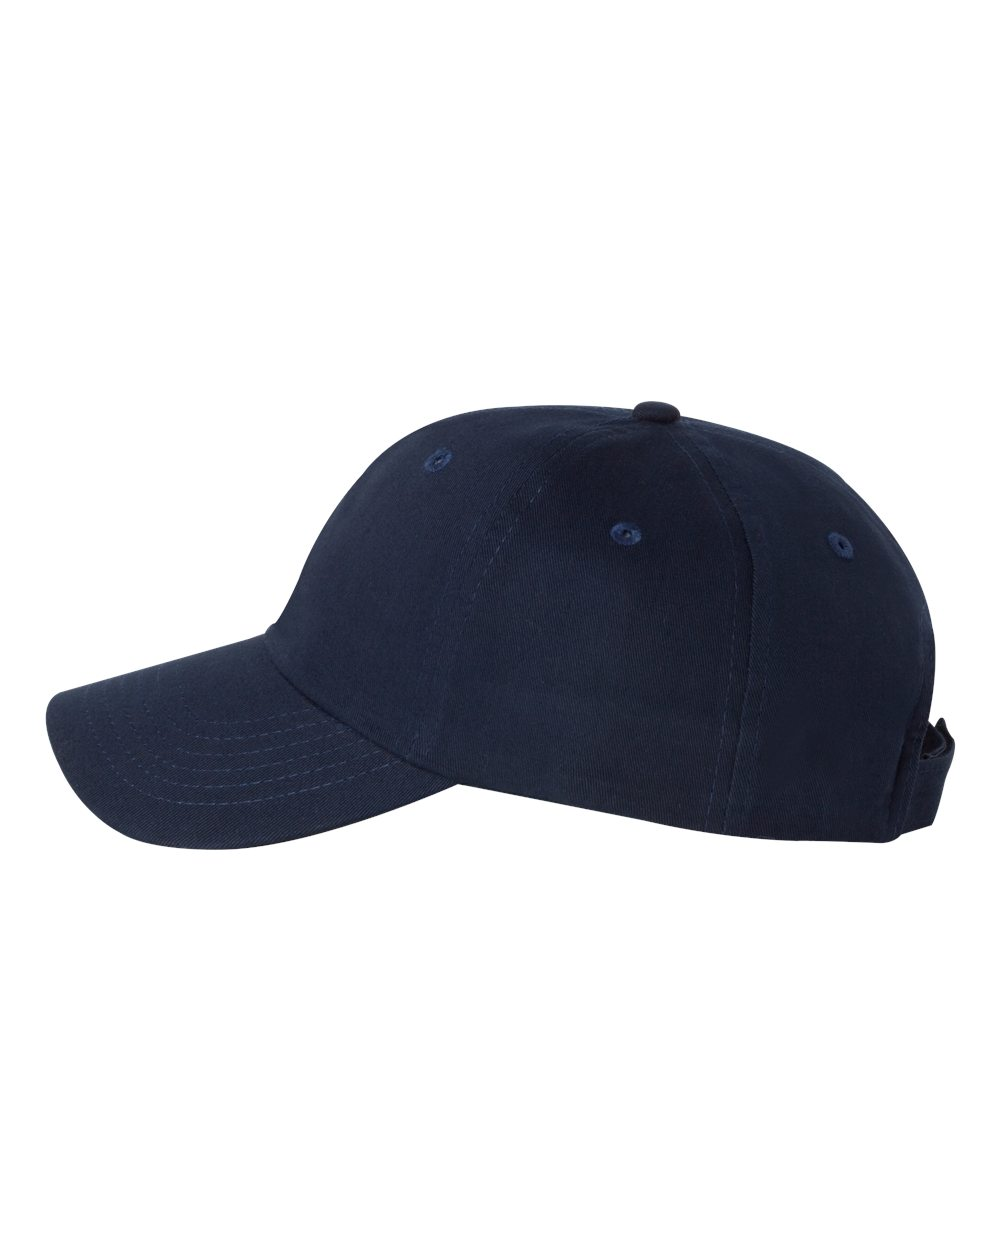 Valucap VC200 Brushed Twill Cap